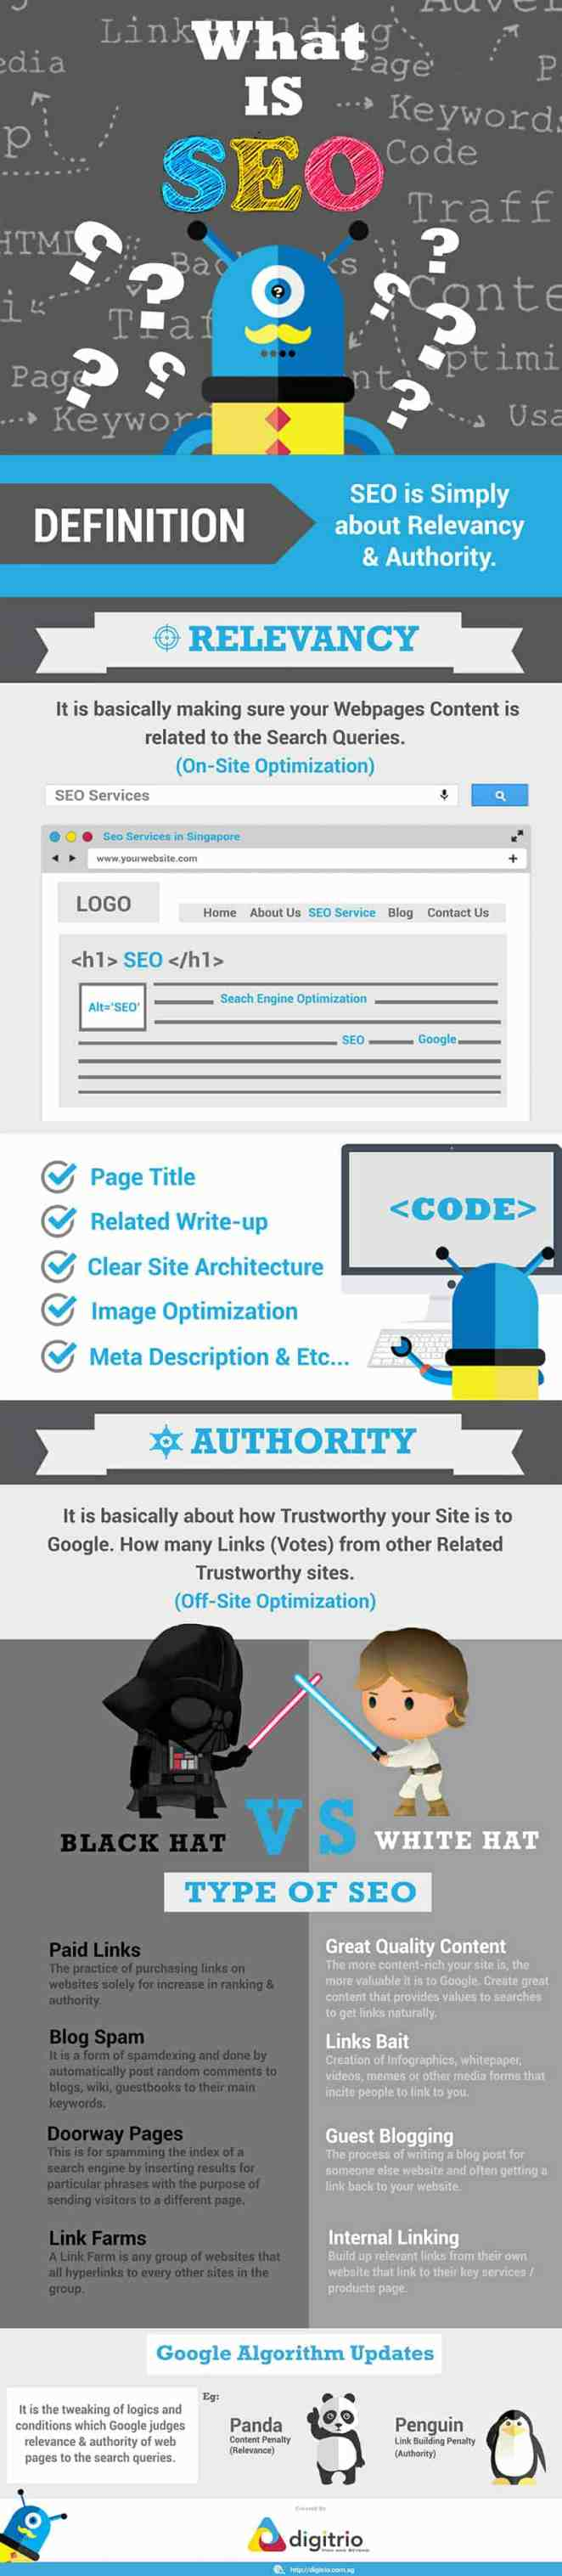 Simple Explanation on What is SEO